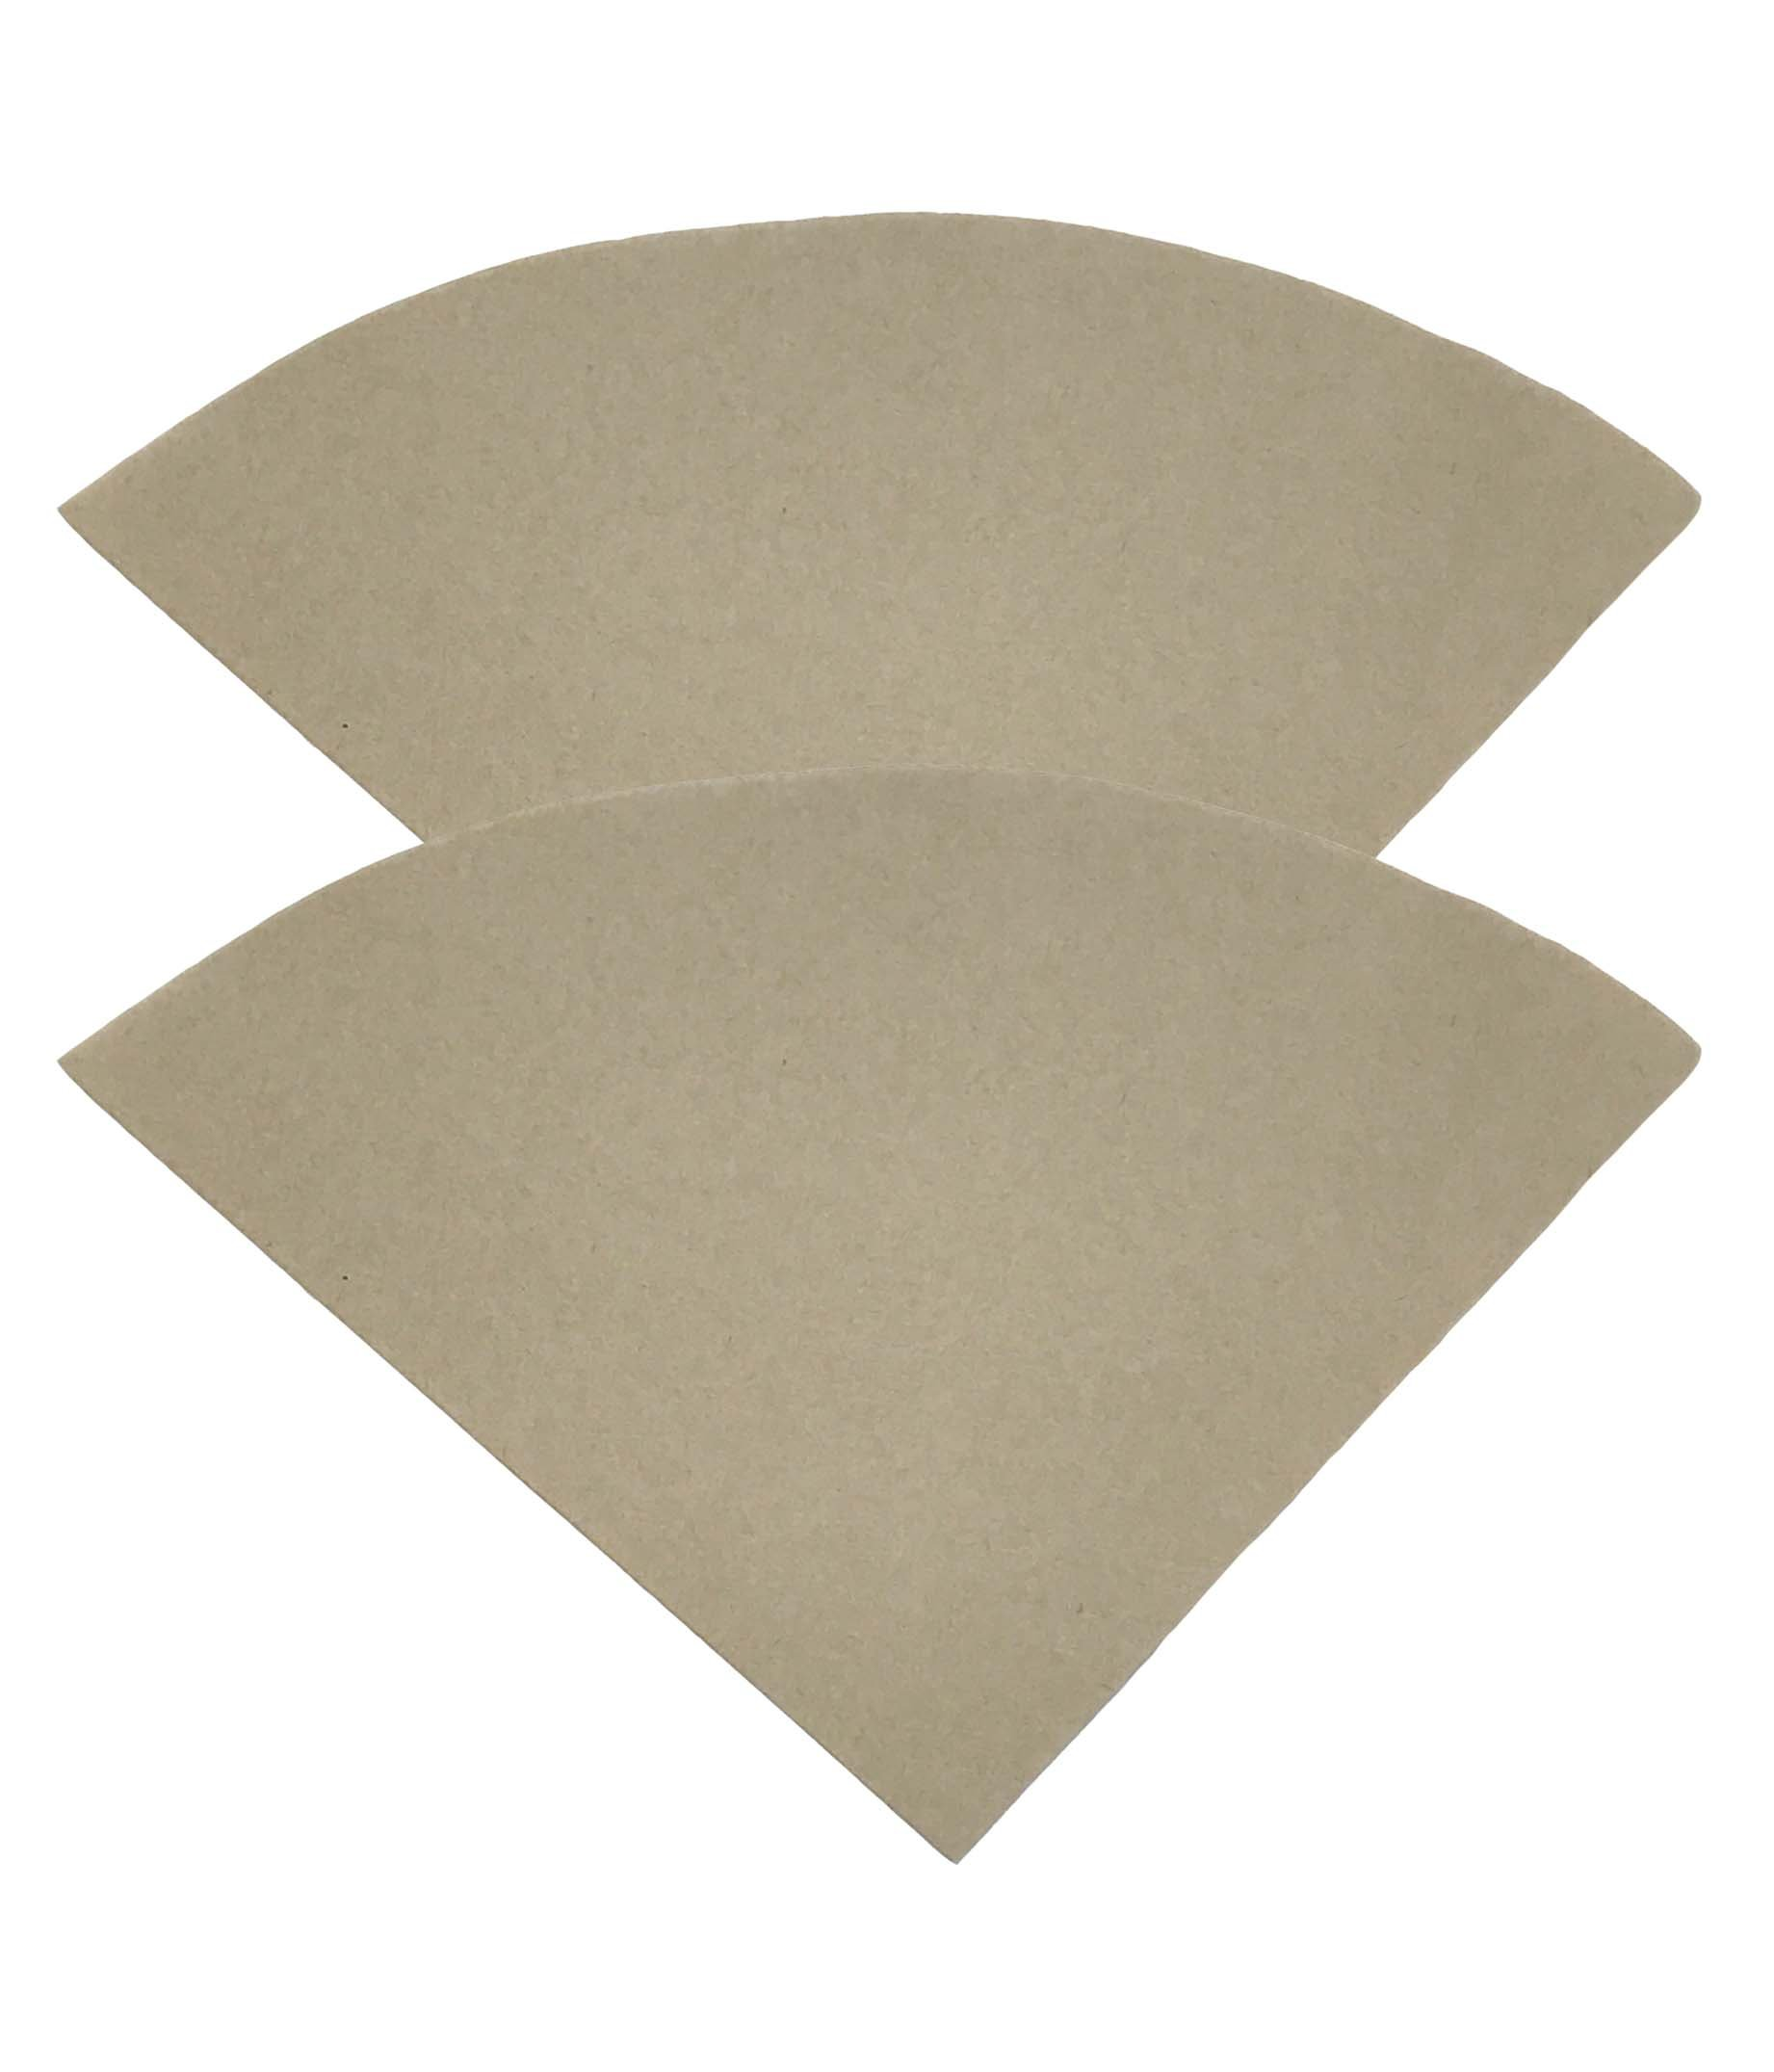 Cheap Coffee Filters 6 Find Deals On Line At Hario Paper Filter Vcf 02 100m Get Quotations 200pk Compatible Replacement Unbleached For 8 10 Cup Chemex